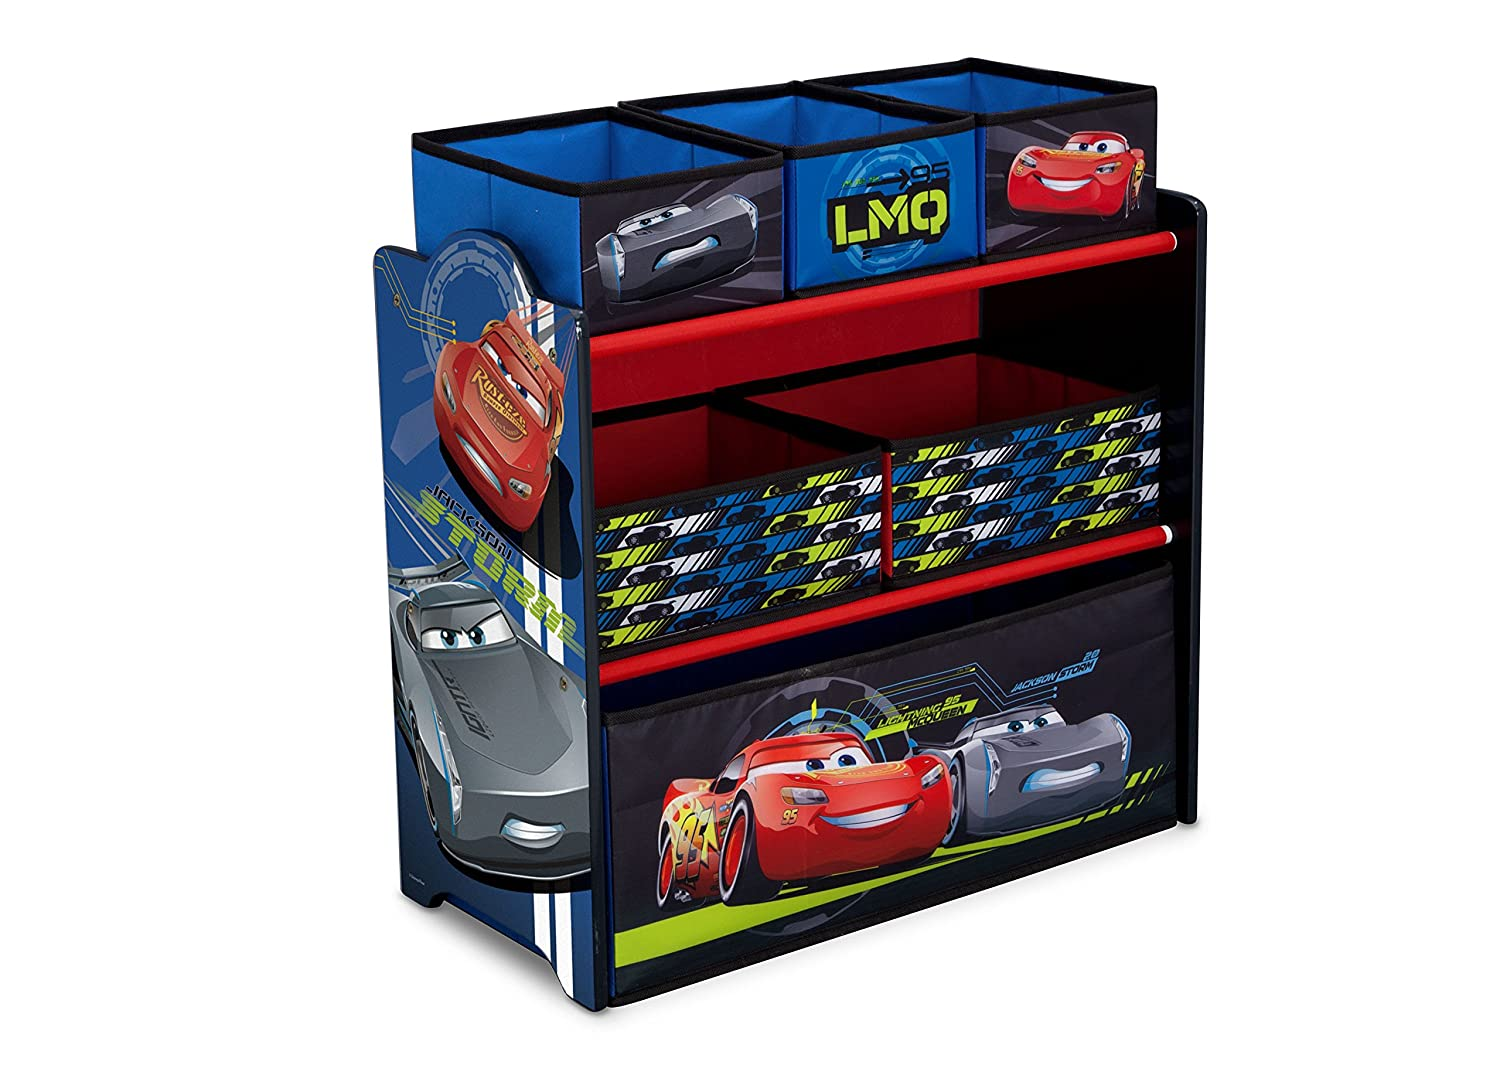 Paw Patrol Toy Organizer Bin Cubby Kids Child Storage Box: Cut The Clutter In A Hurry With Kids Toy Organizers They